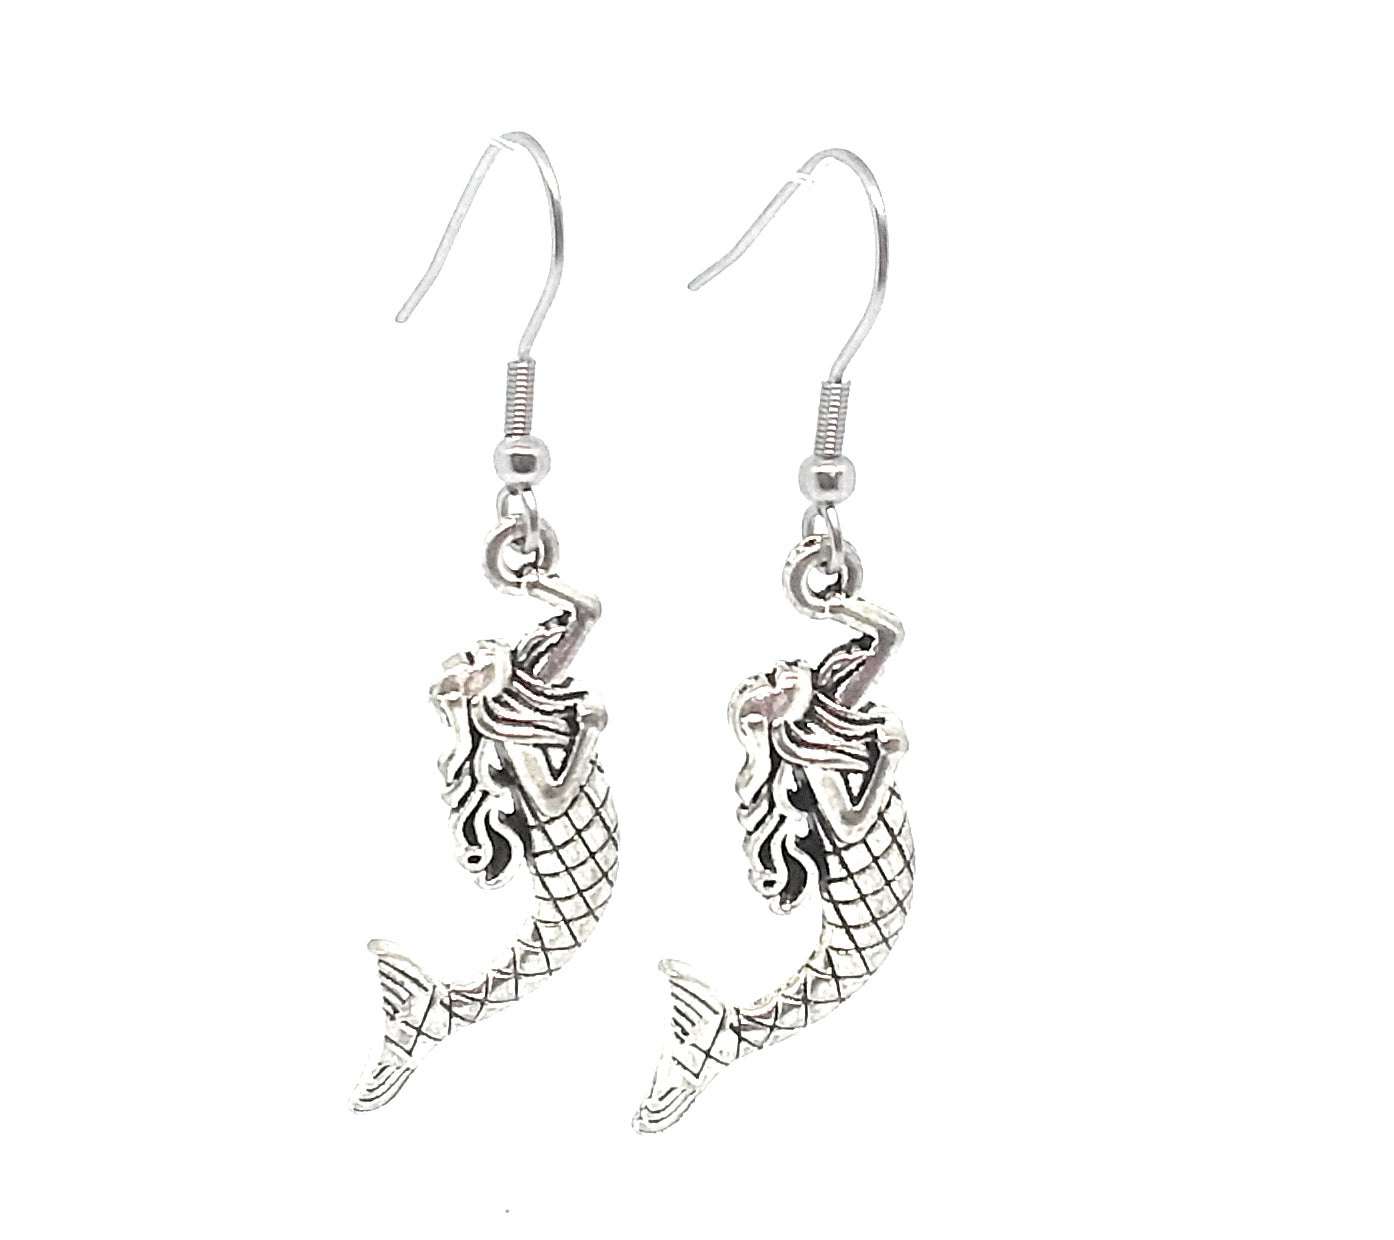 Mermaid Charm Dangle Earrings with Stainless Steel Ear Wires (Mermaid #3)